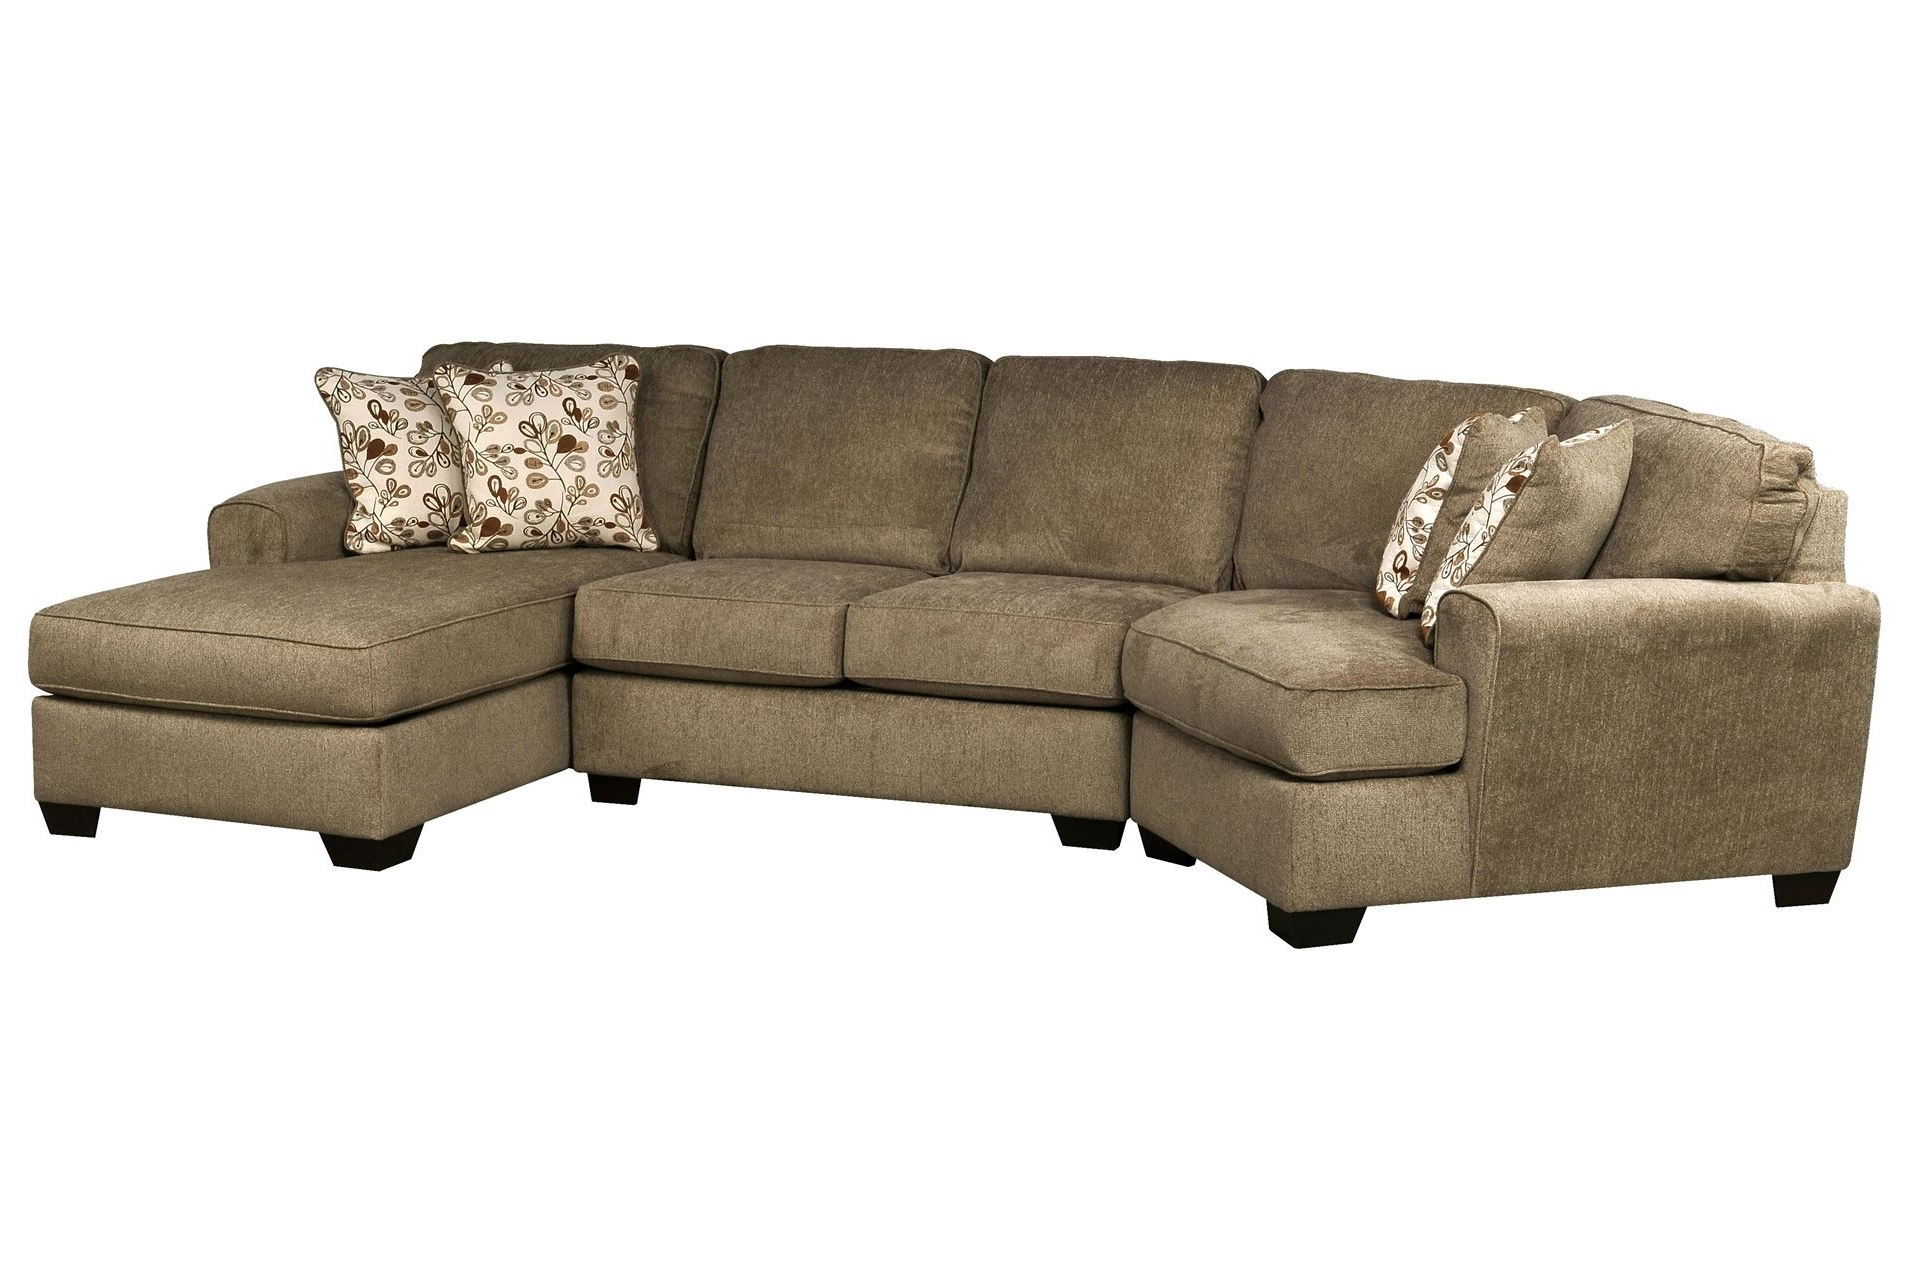 Most Recently Released Angled Chaise Sofas Regarding Don't Love The Color, But The Shape Is Great! (View 3 of 15)